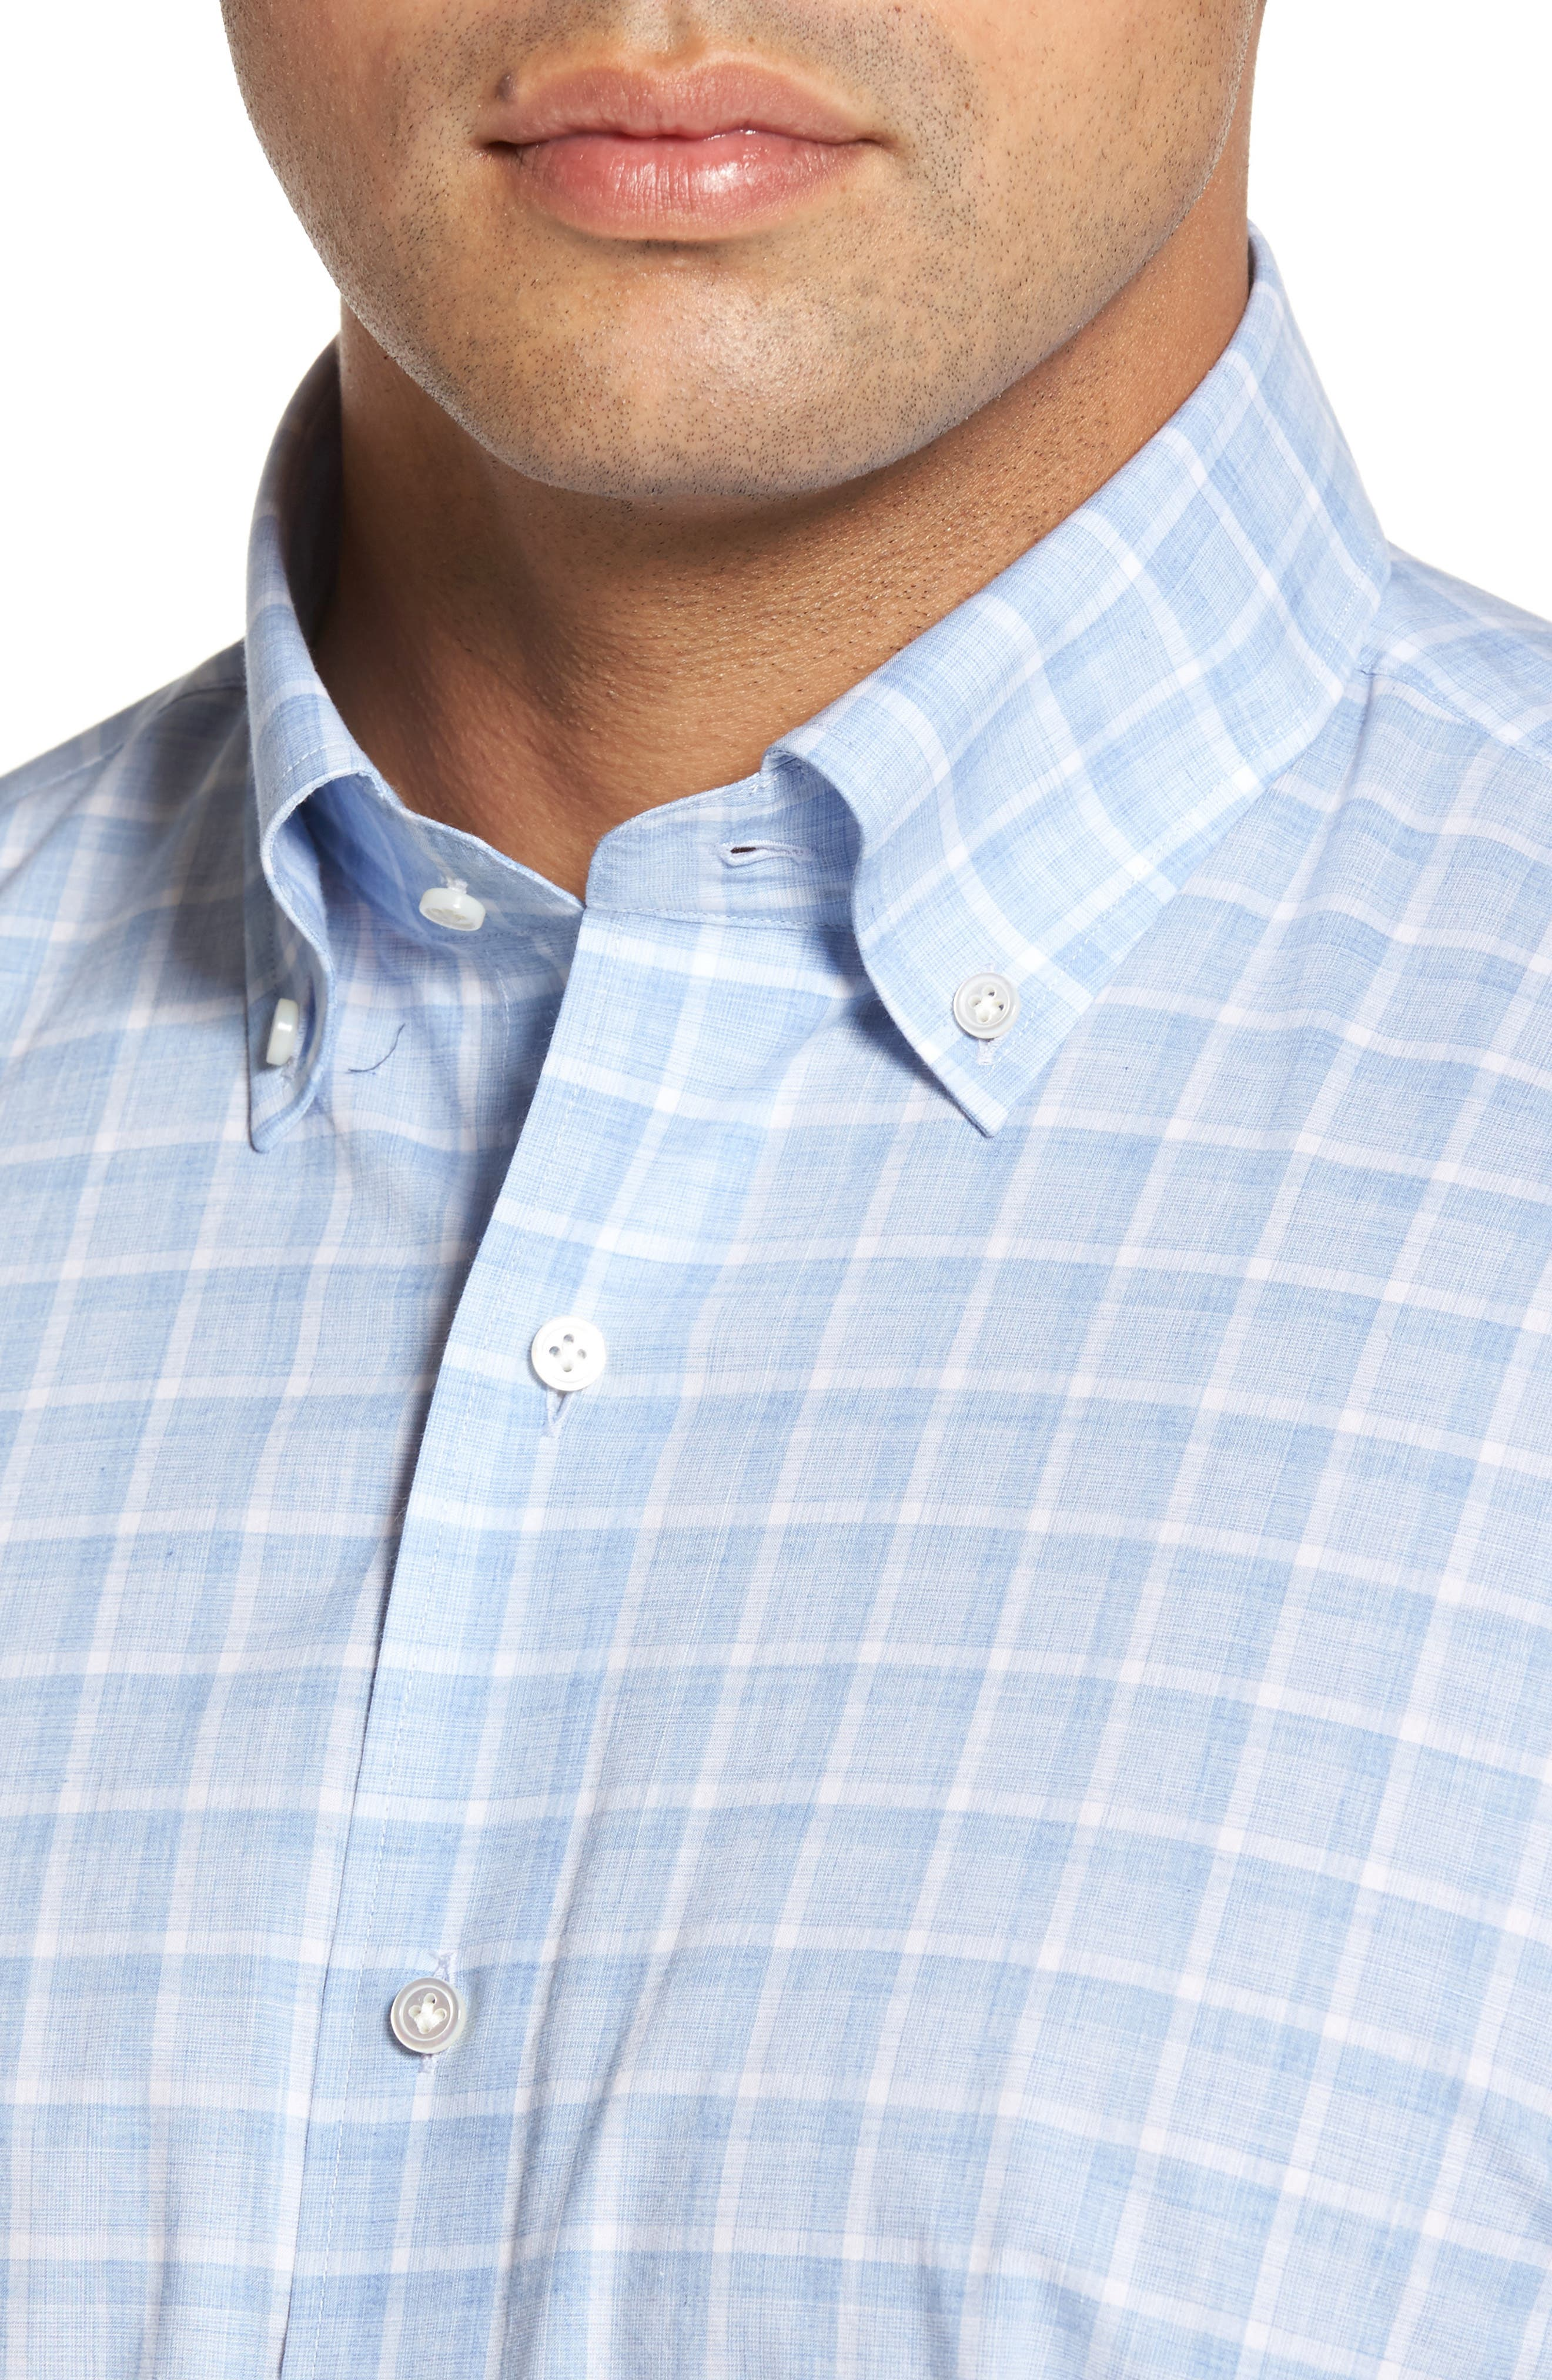 Starry Night Tailored Fit Mélange Check Sport Shirt,                             Alternate thumbnail 4, color,                             Blue Ceillo